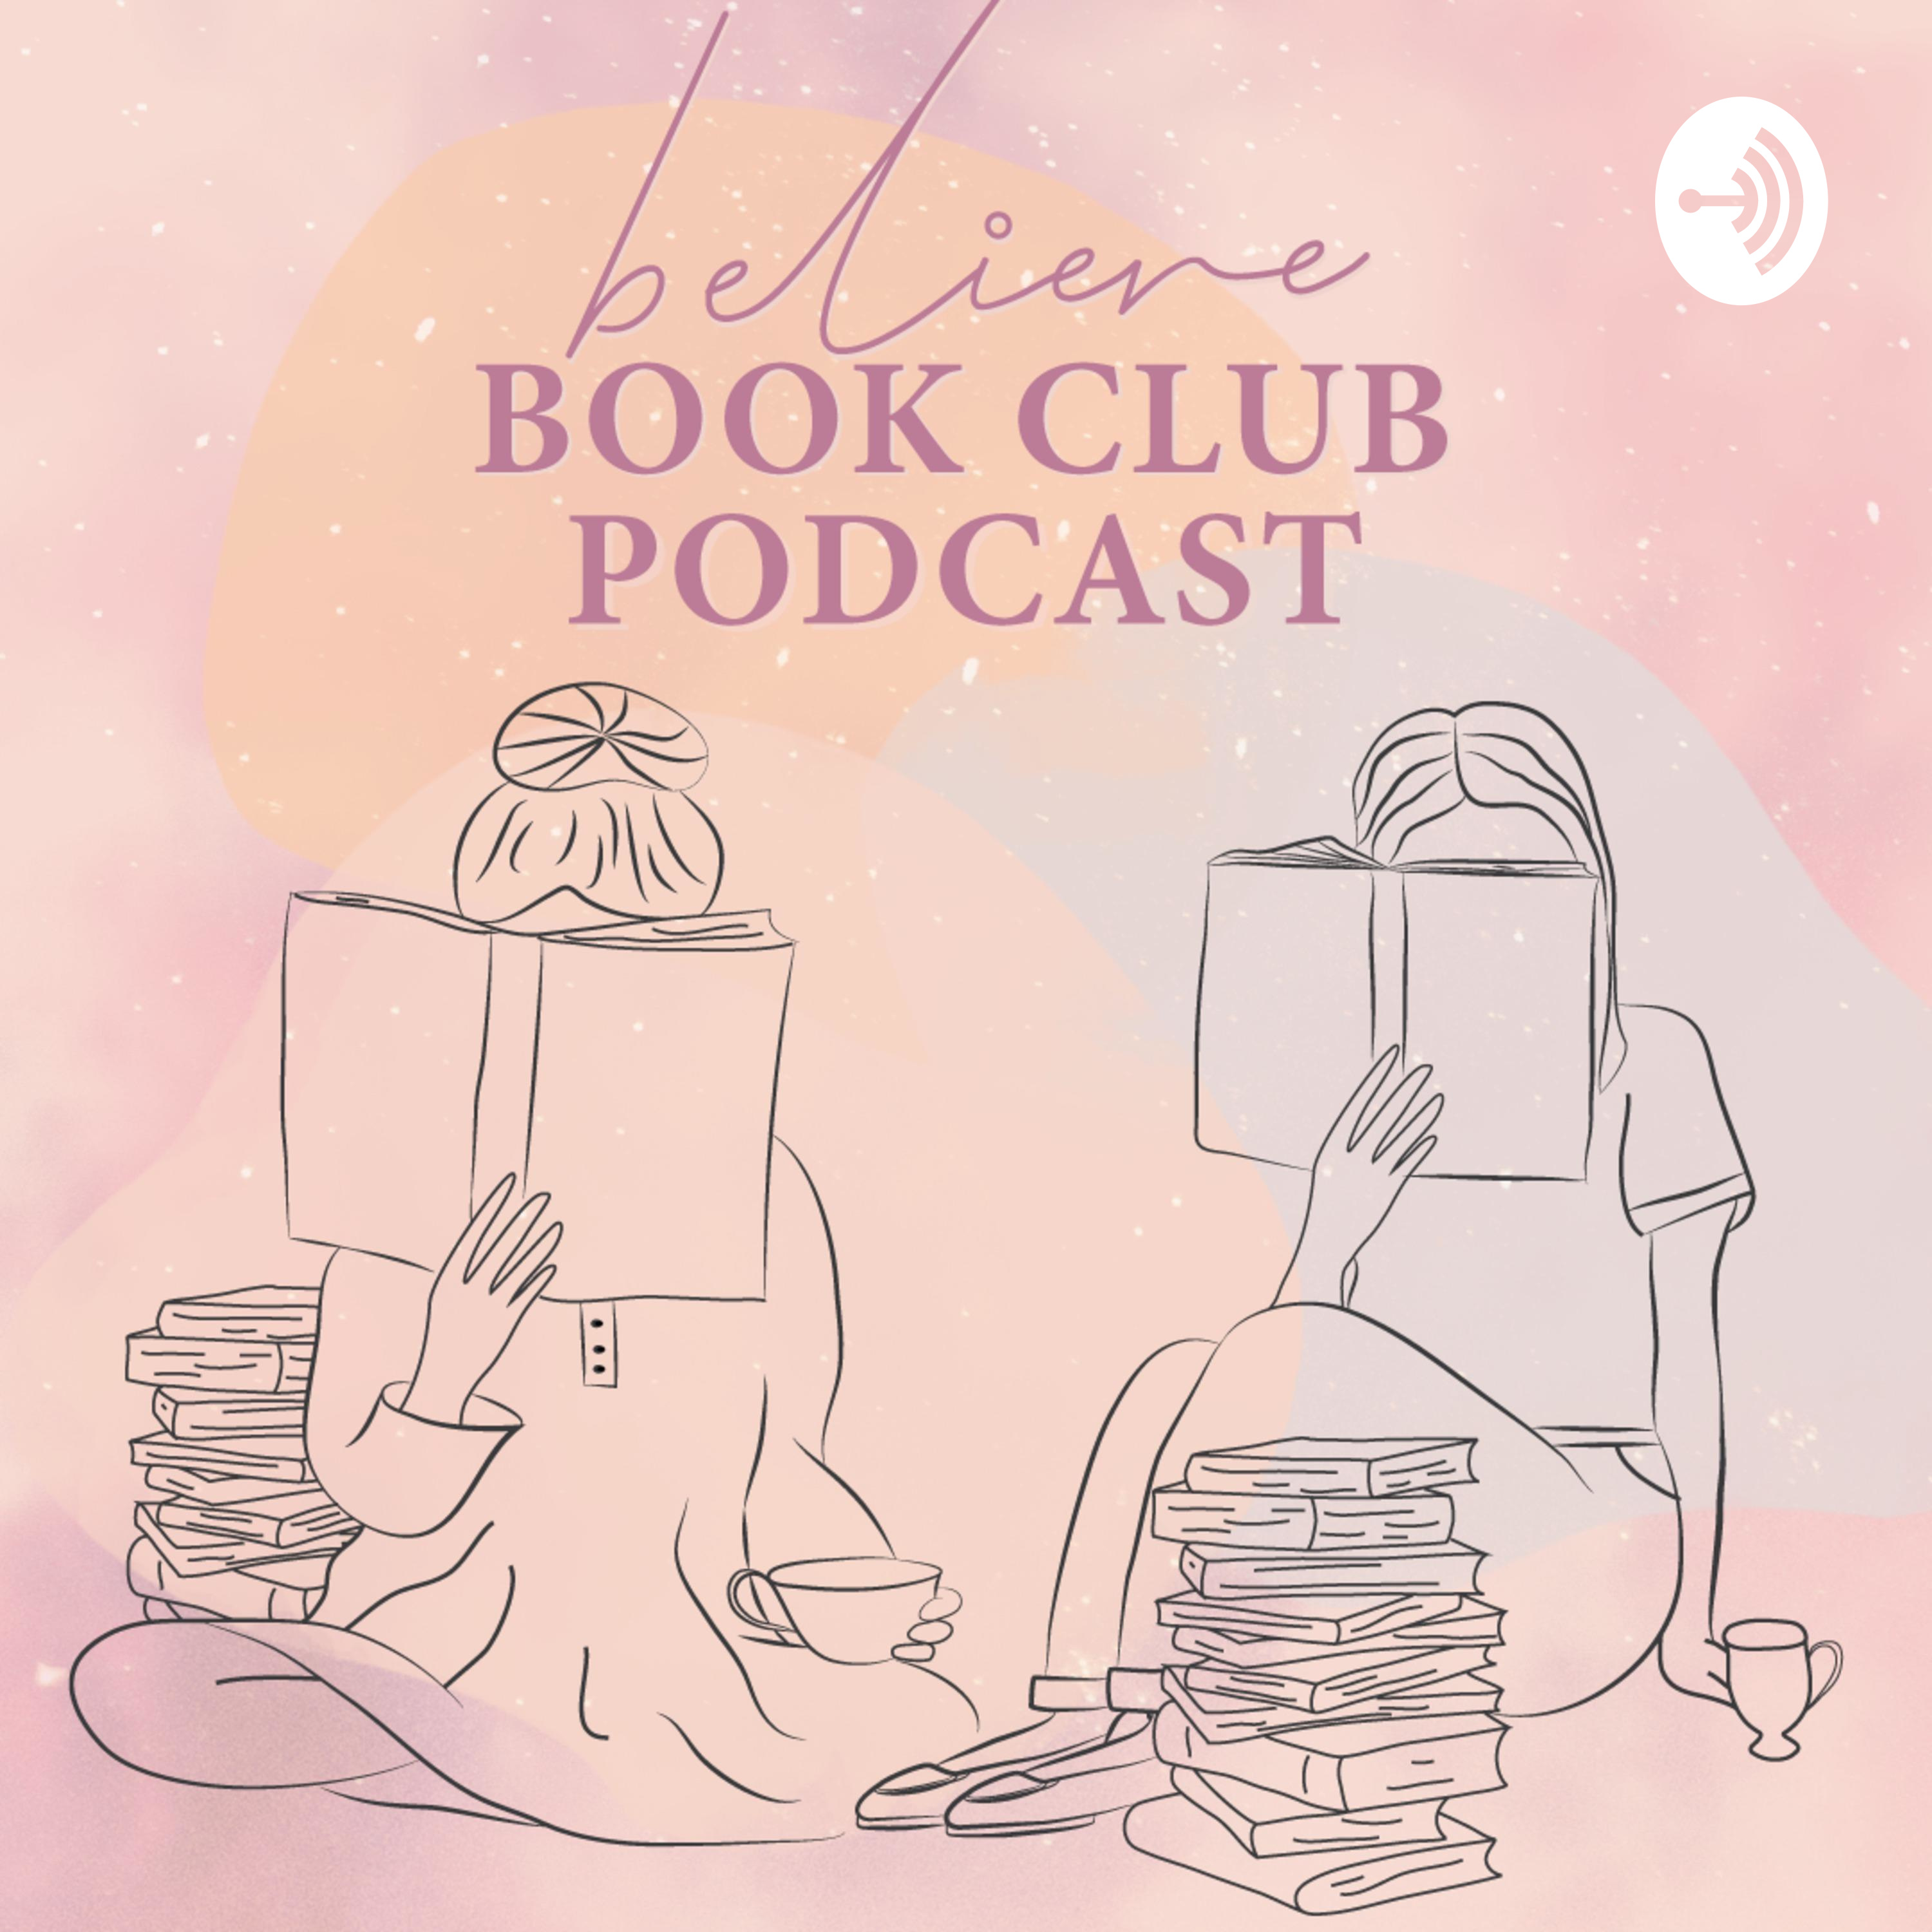 Ep. 01: Welcome to the Believe Book Club